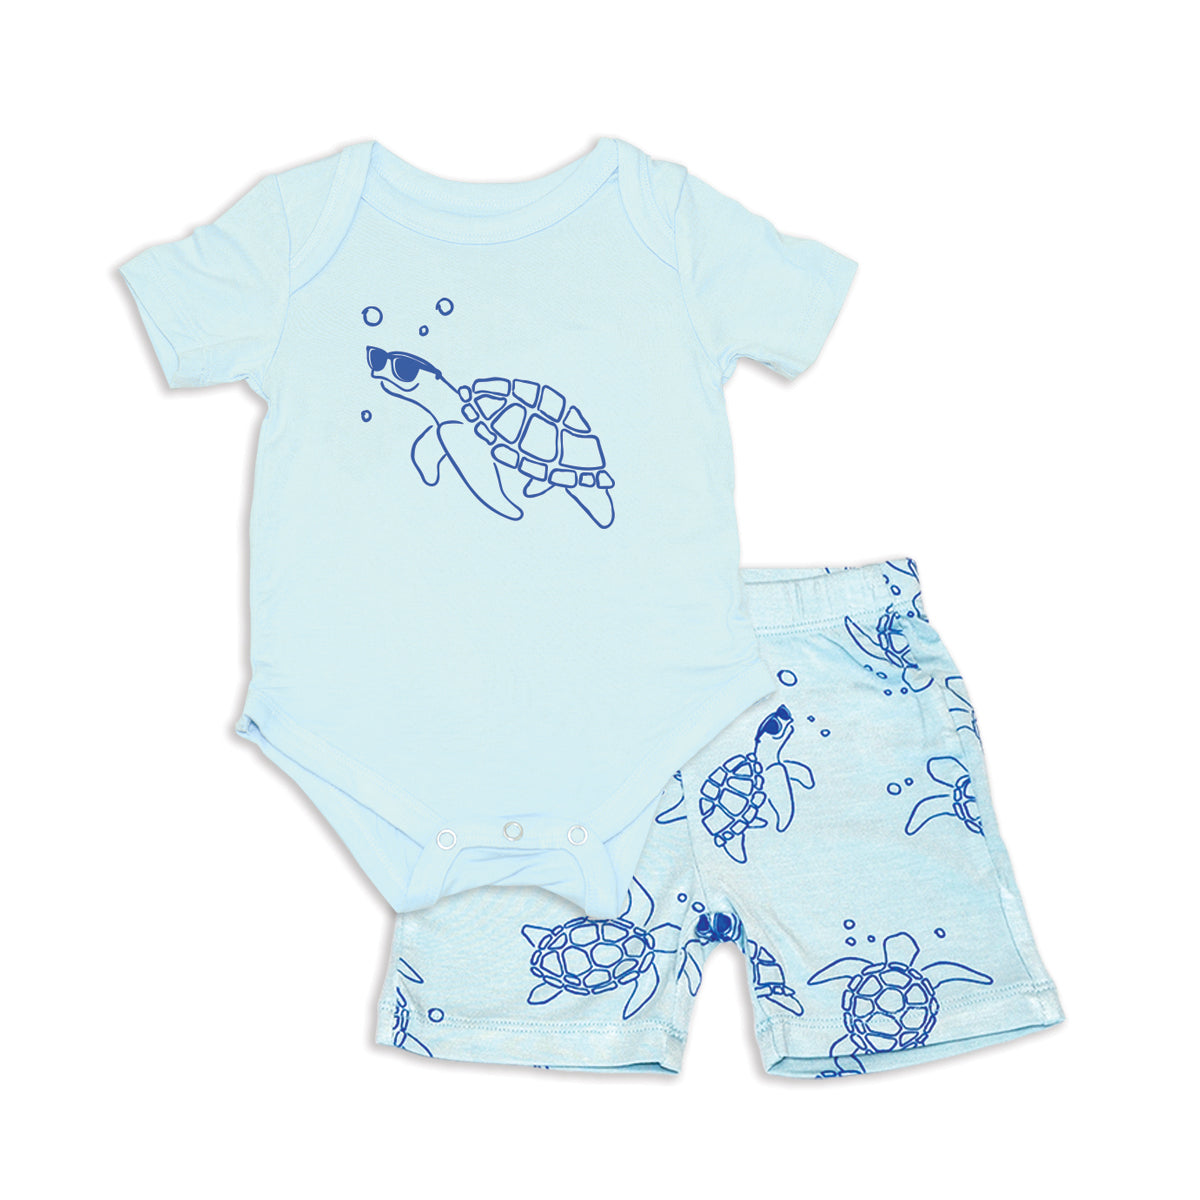 Bamboo Short Sleeve Onesie & Short Set (Starlight/Sea Turtle Print)